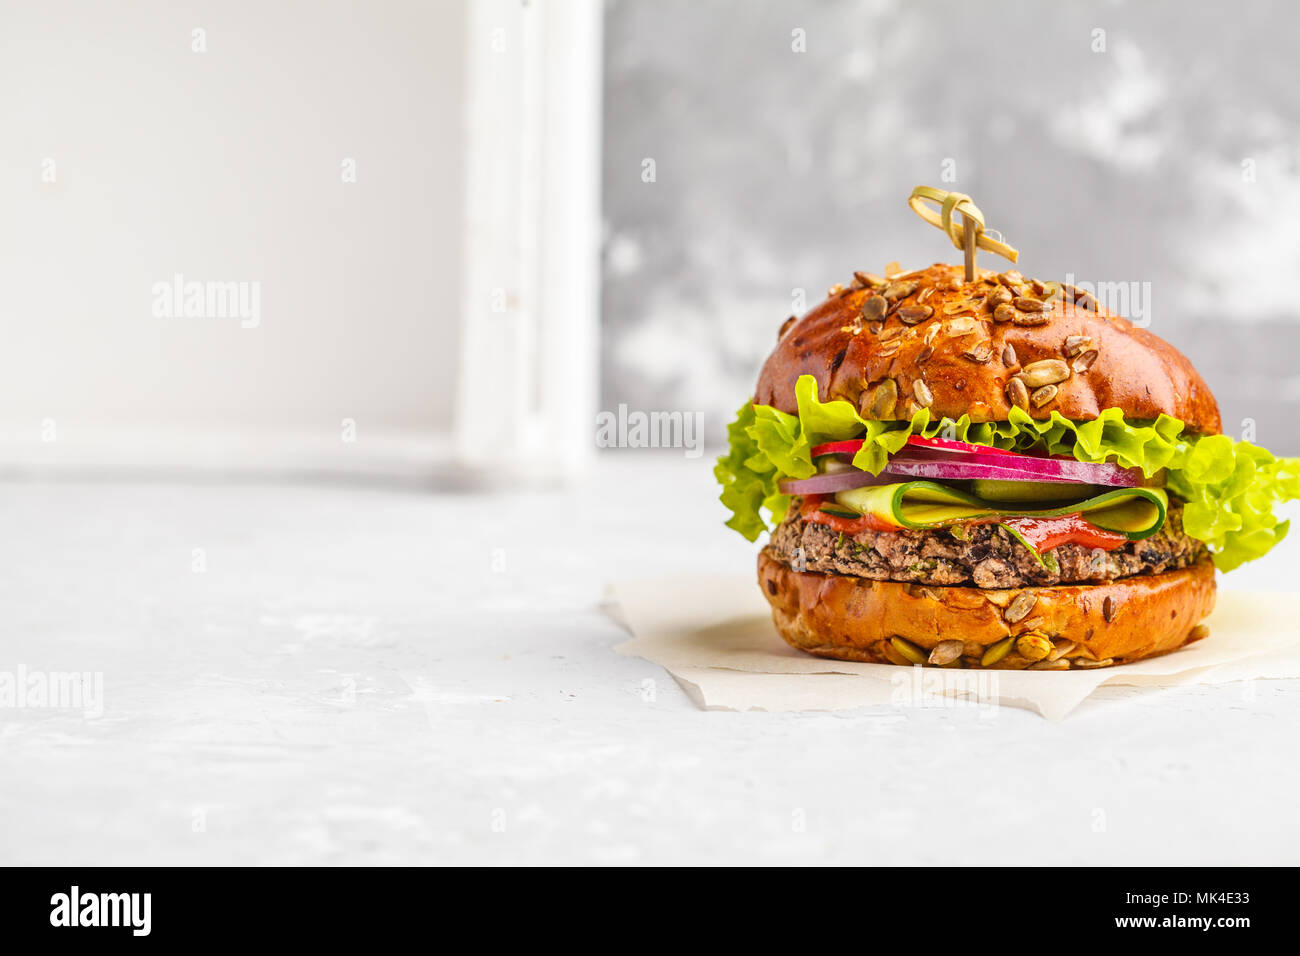 Vegan bean burger with vegetables and tomato sauce, copy space. Healthy vegan food concept. - Stock Image